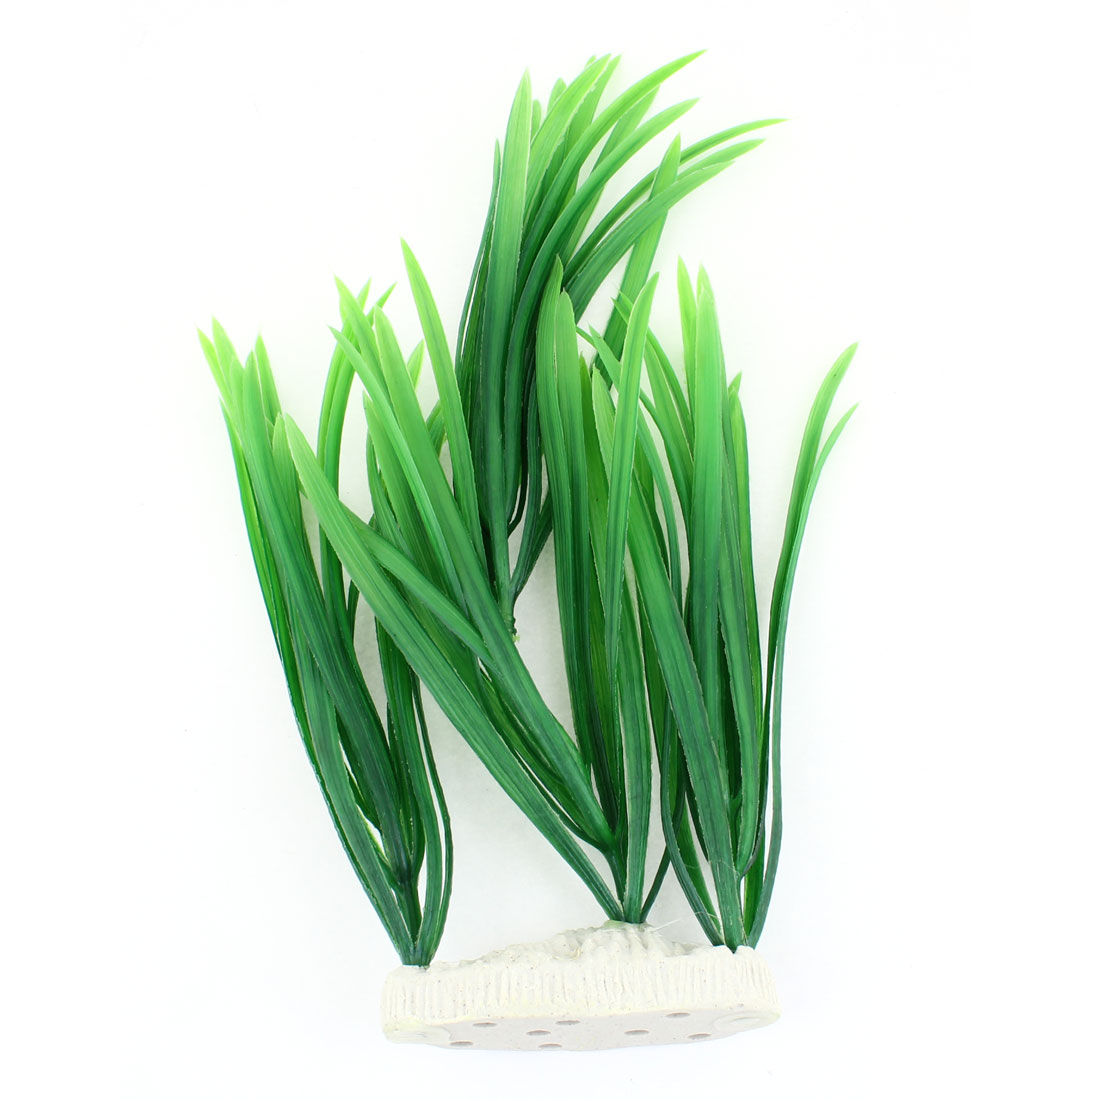 "12.6"" Height Green Plastic Grass Plants Decoration for Fish Tank"